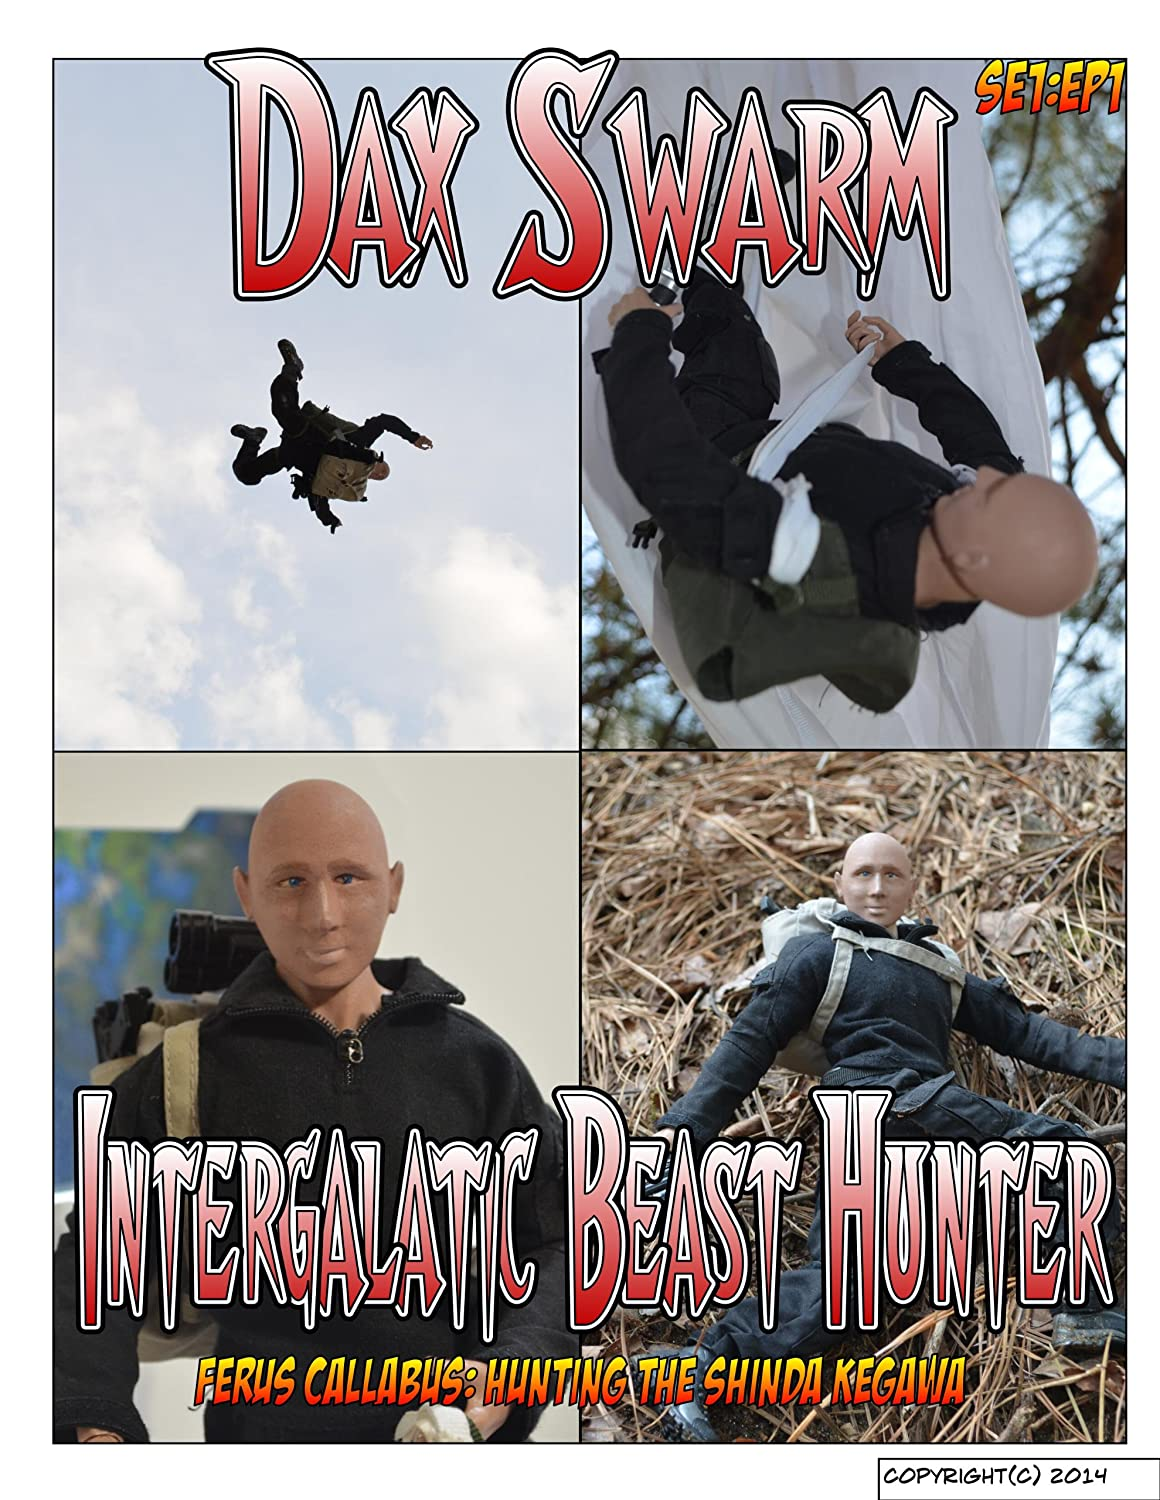 CoverPage_Dax_Swarm_Intergalactic_Beast_Hunter_Shinda_Kegawa_by_Jeff_Weidner